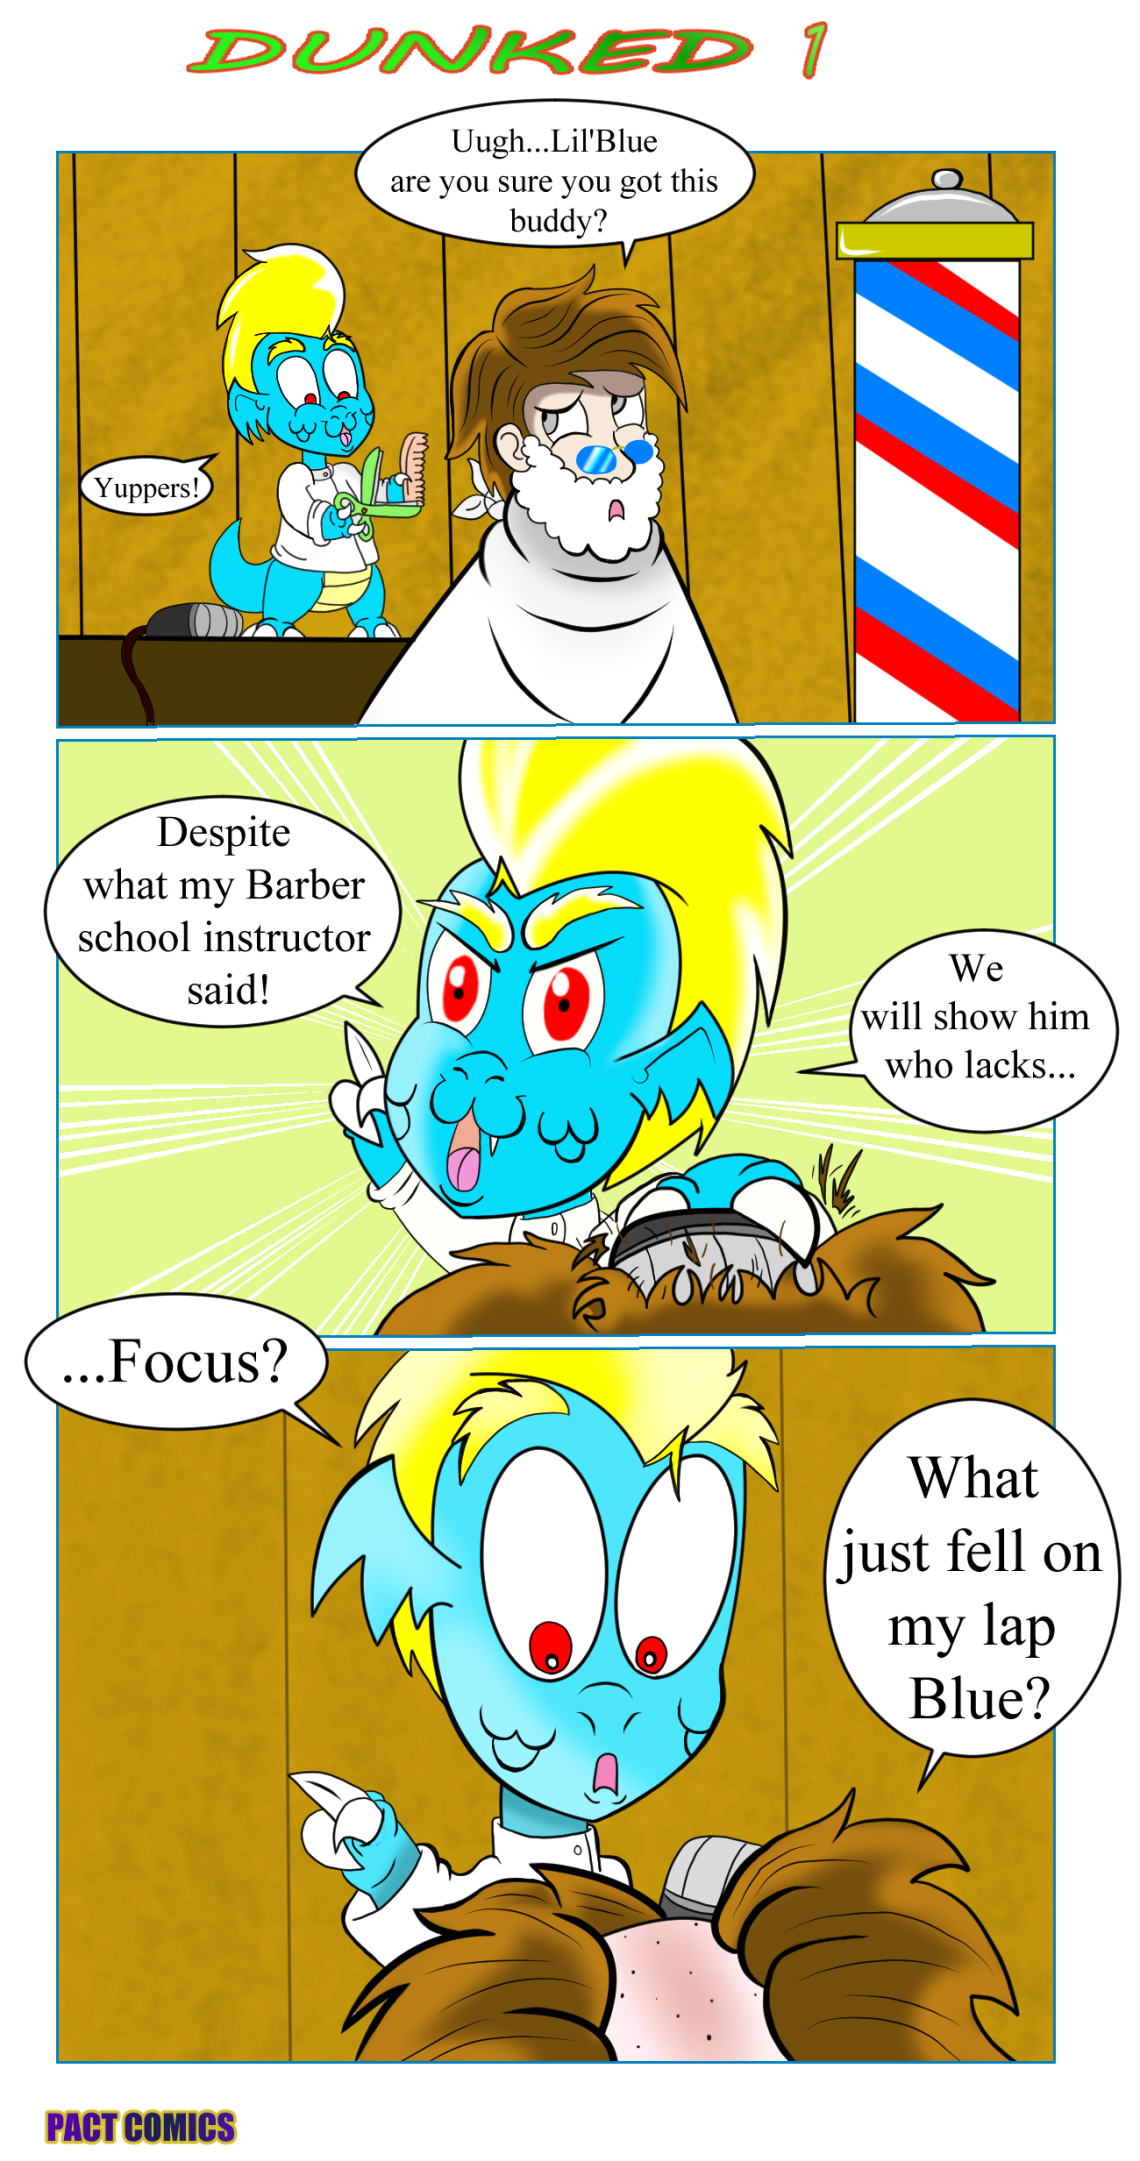 Christian webcomics - Lil'Blue, Pact Comics